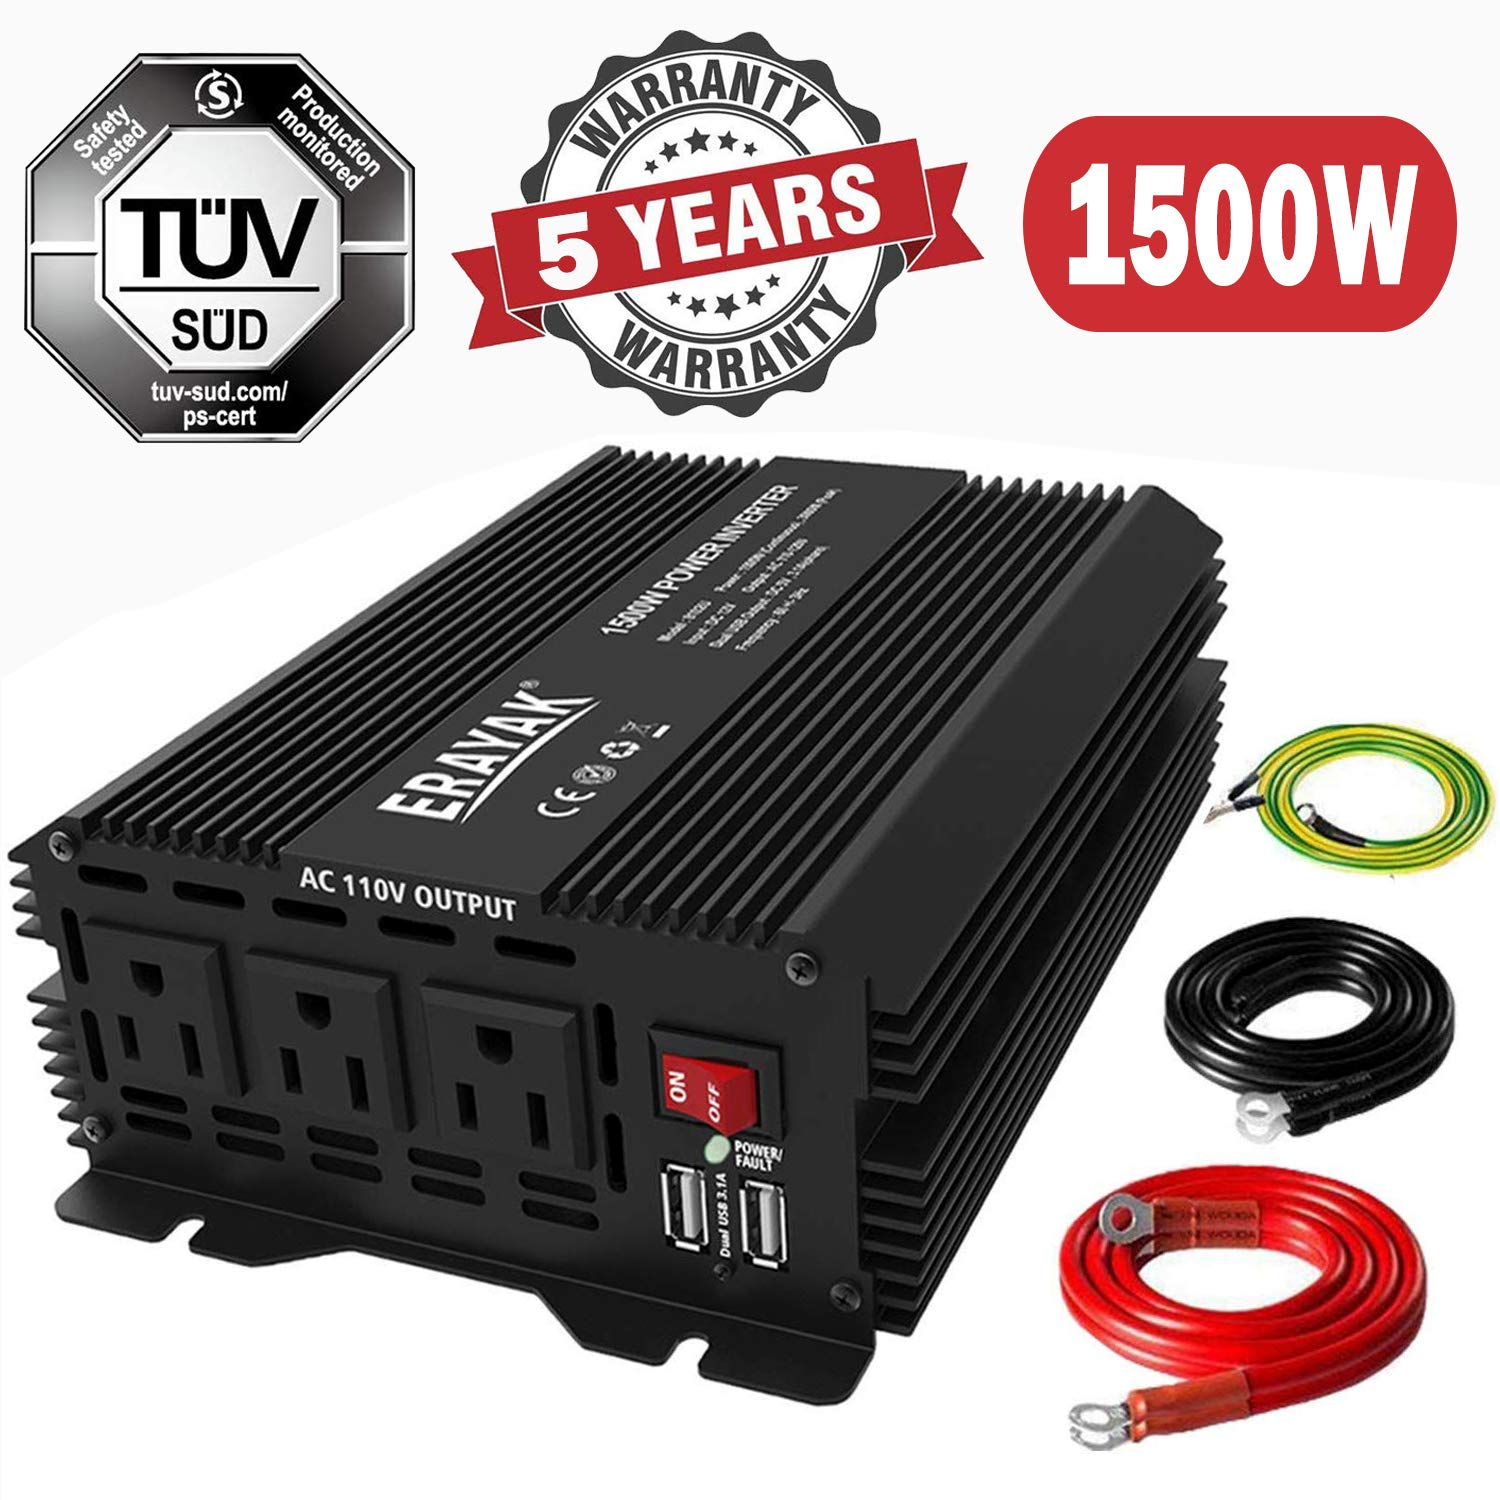 Best Power Inverter For Trucks - Our Top 5 Reviewed 2020 5